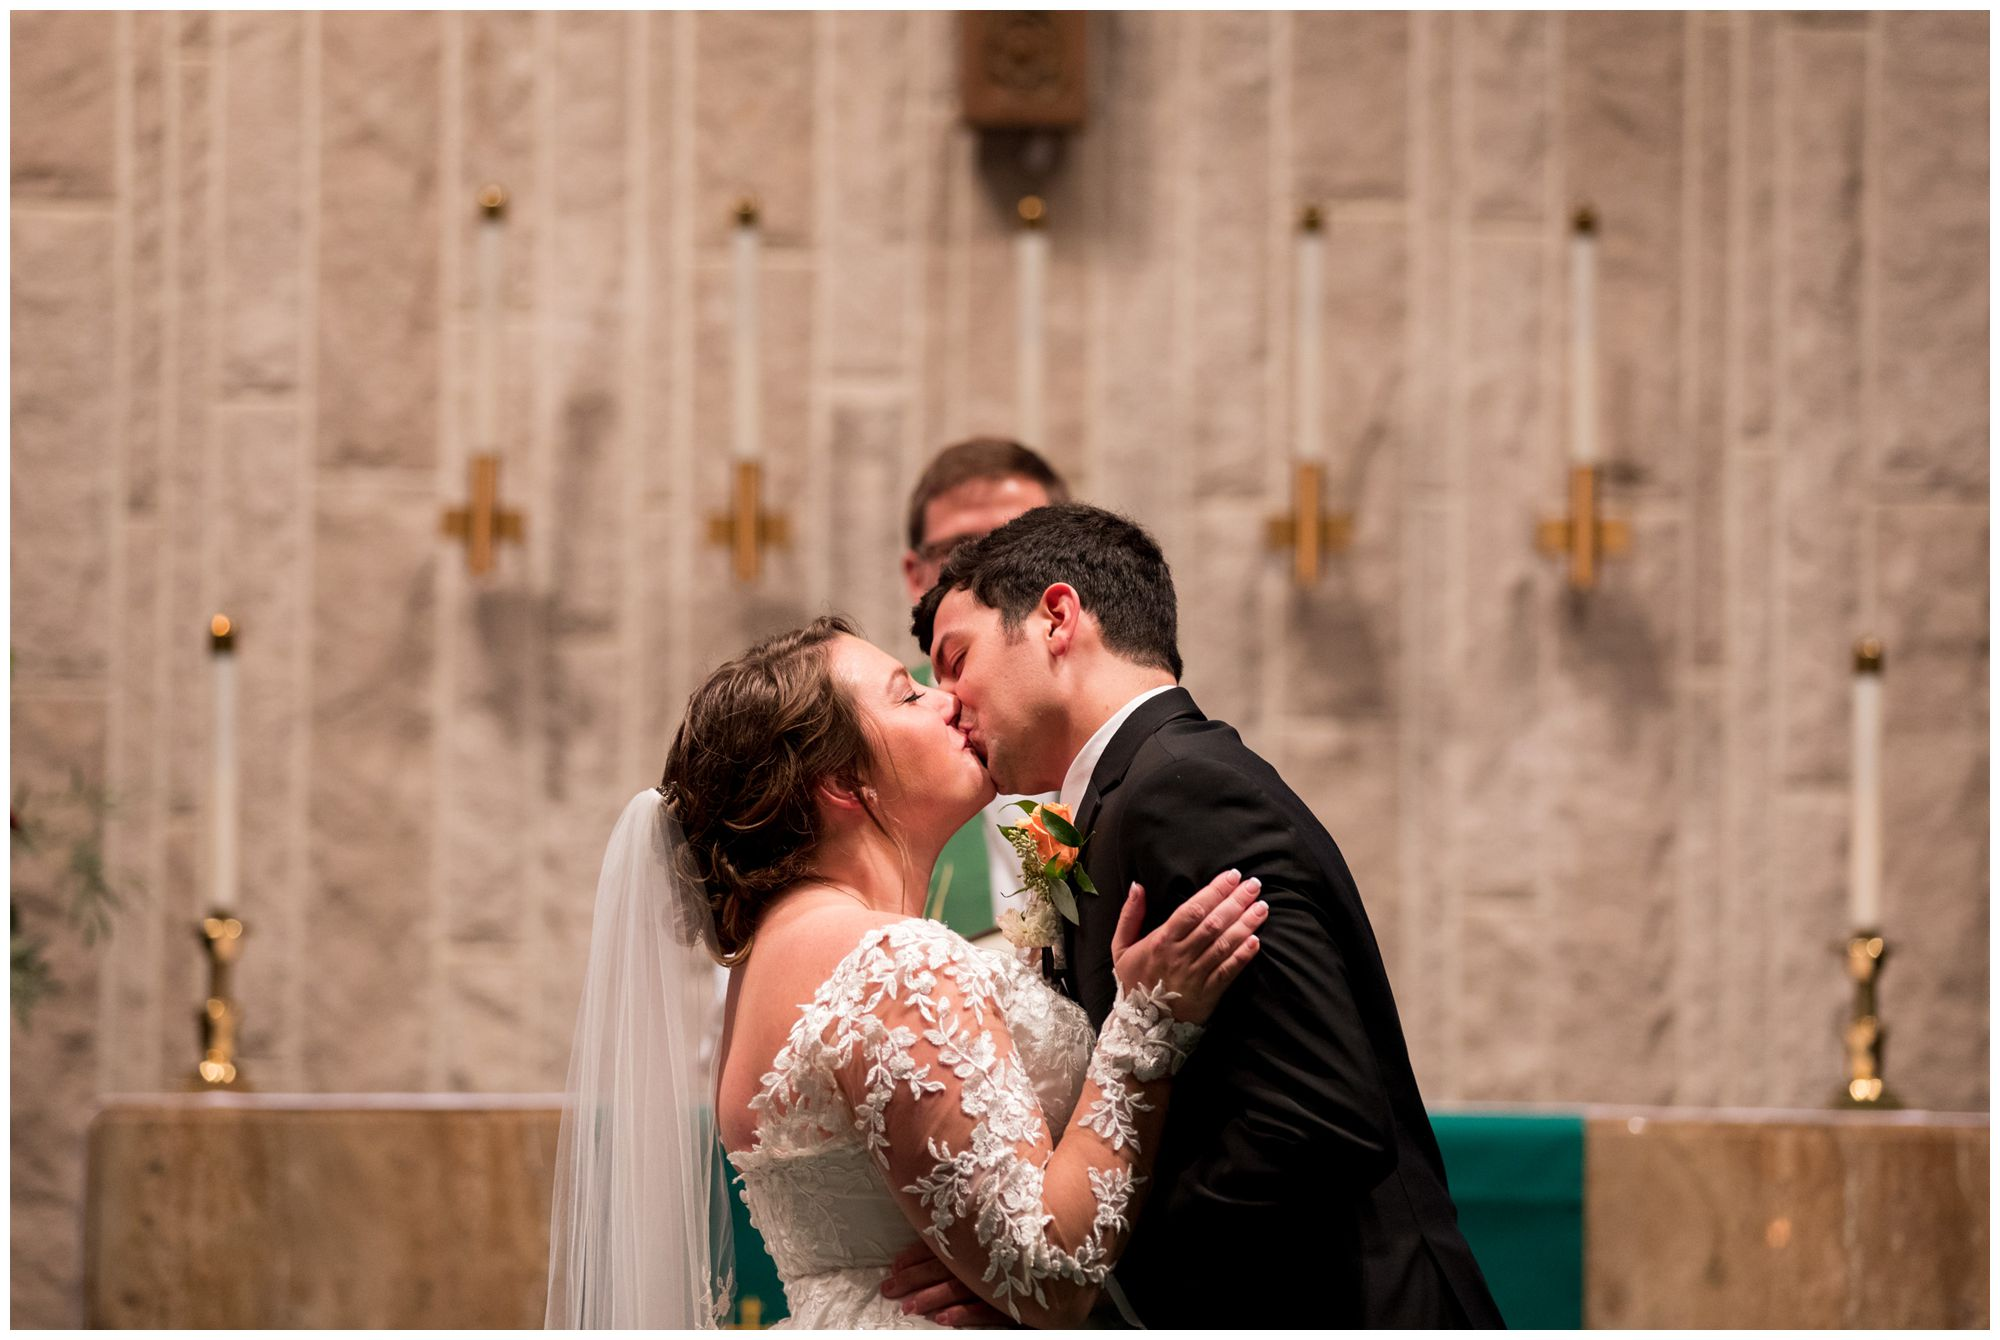 bride and groom first kiss during wedding ceremony at Zion Lutheran Church in Decatur